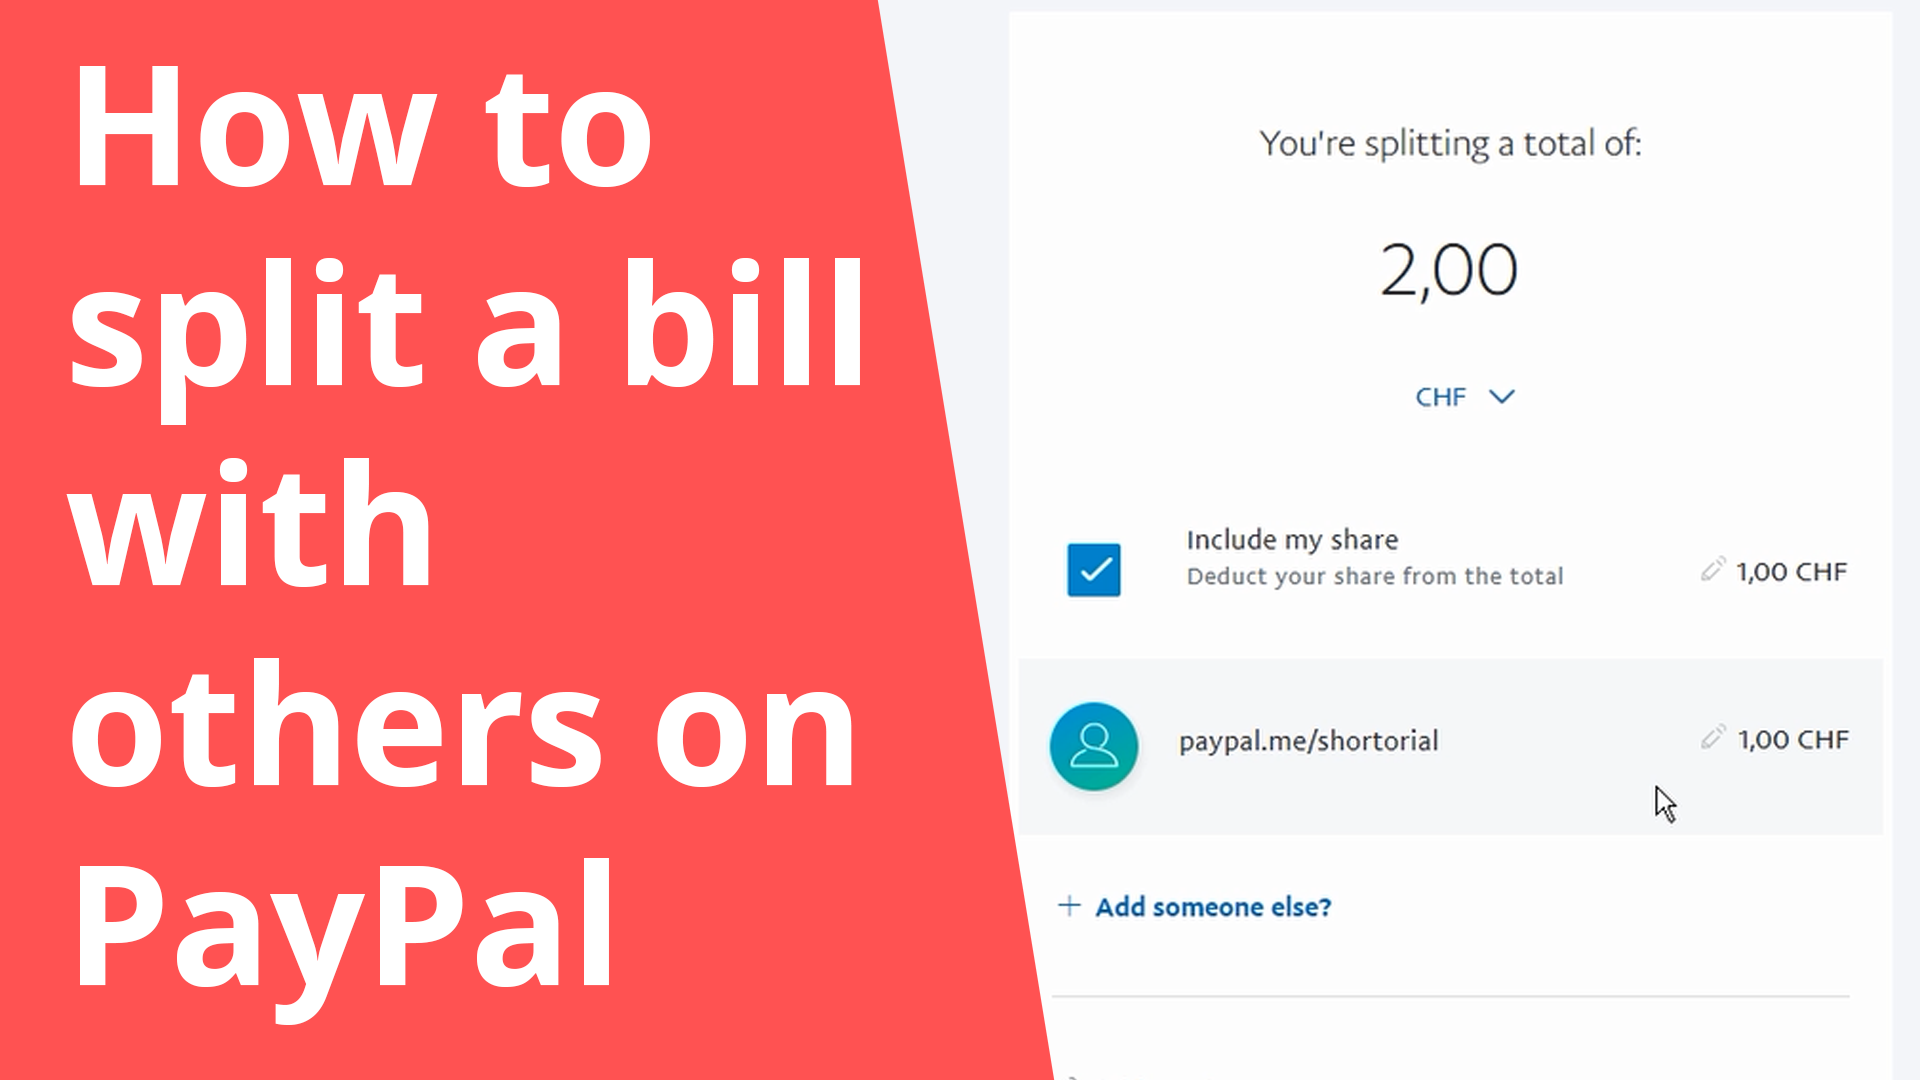 How to split a bill with others on PayPal